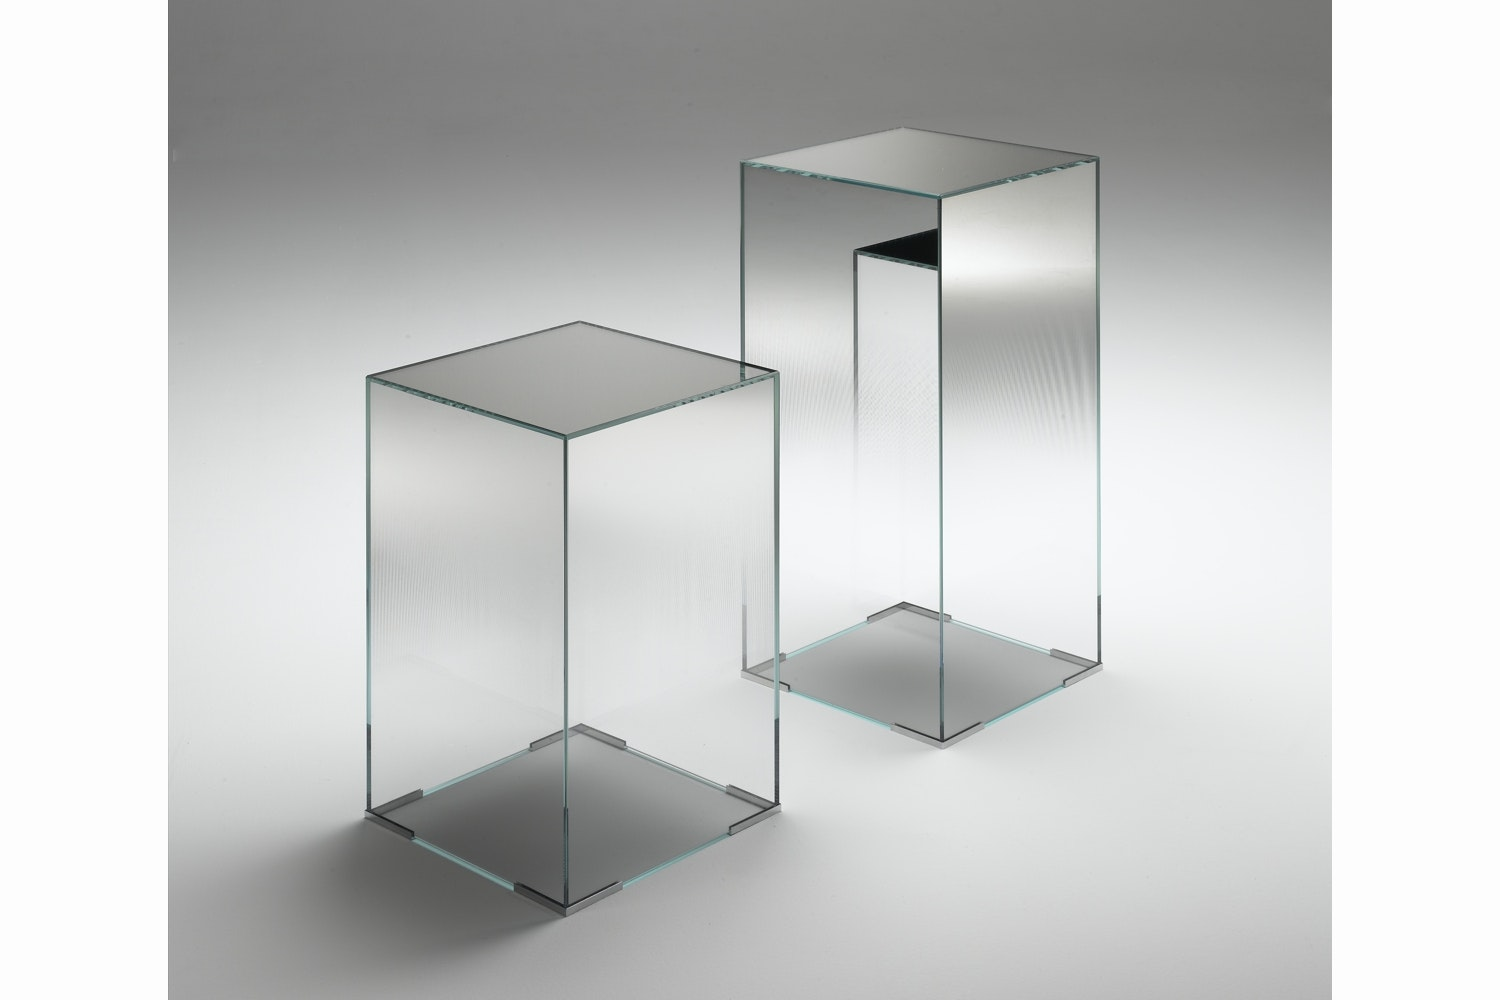 Illusion Side Table by Jean-Marie Massaud for Glas Italia